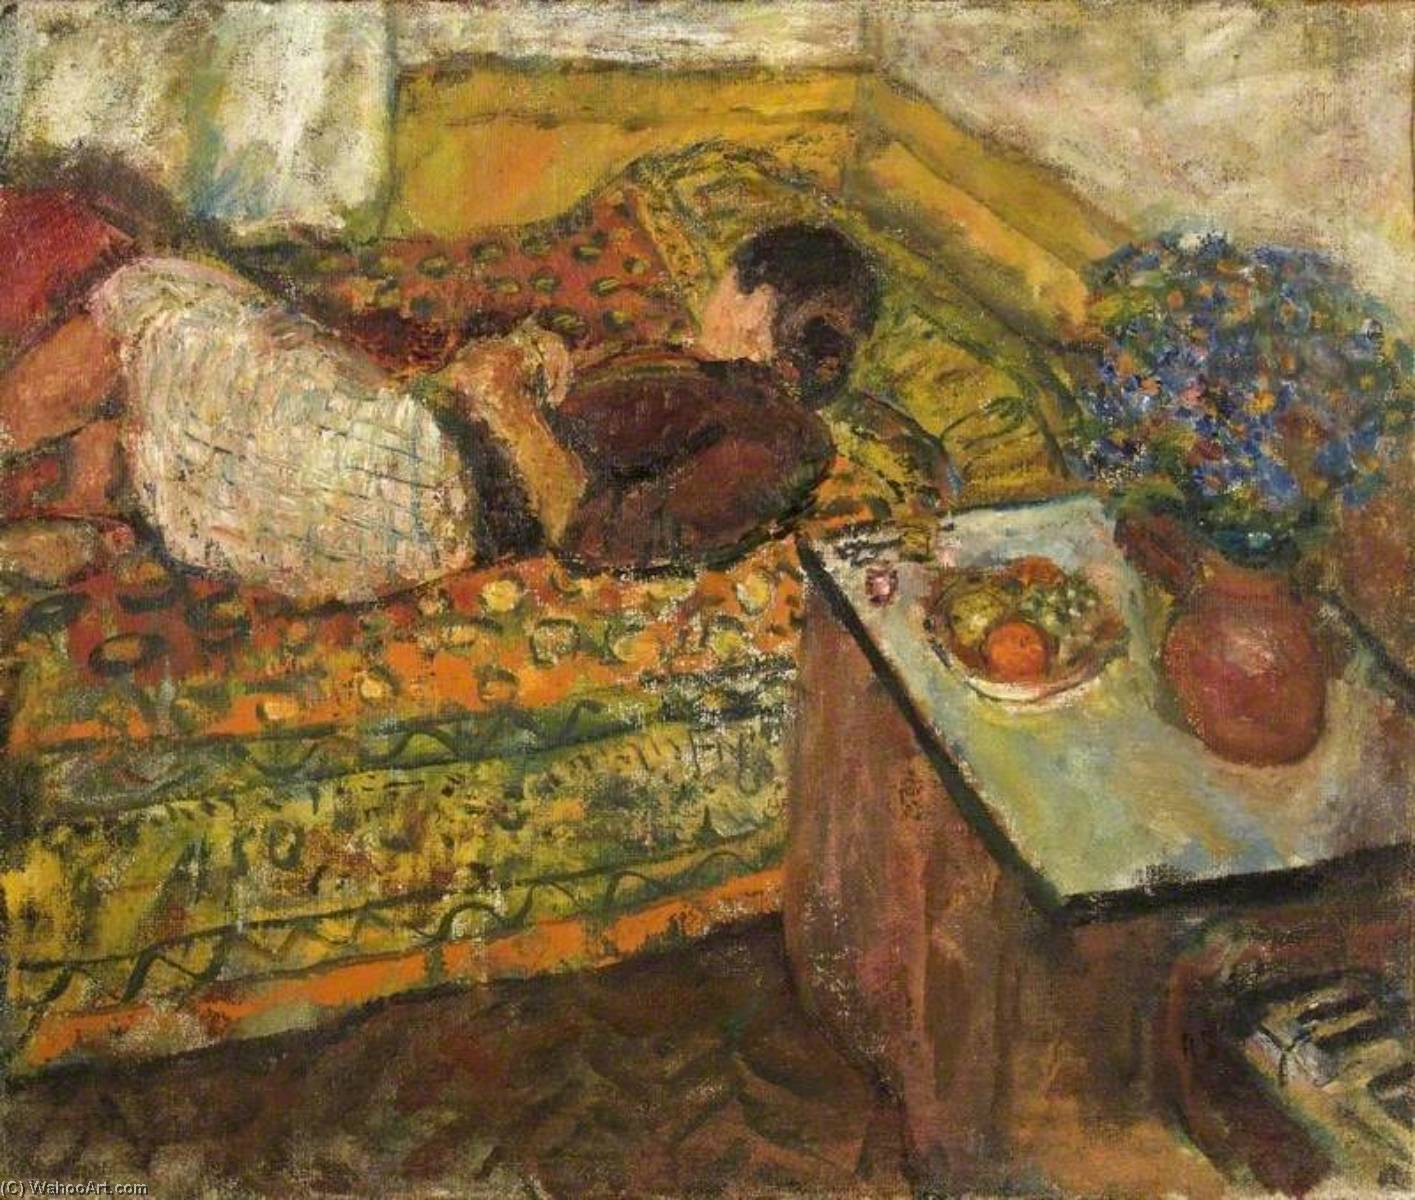 | Siesta by Ruskin Spear | Most-Famous-Paintings.com